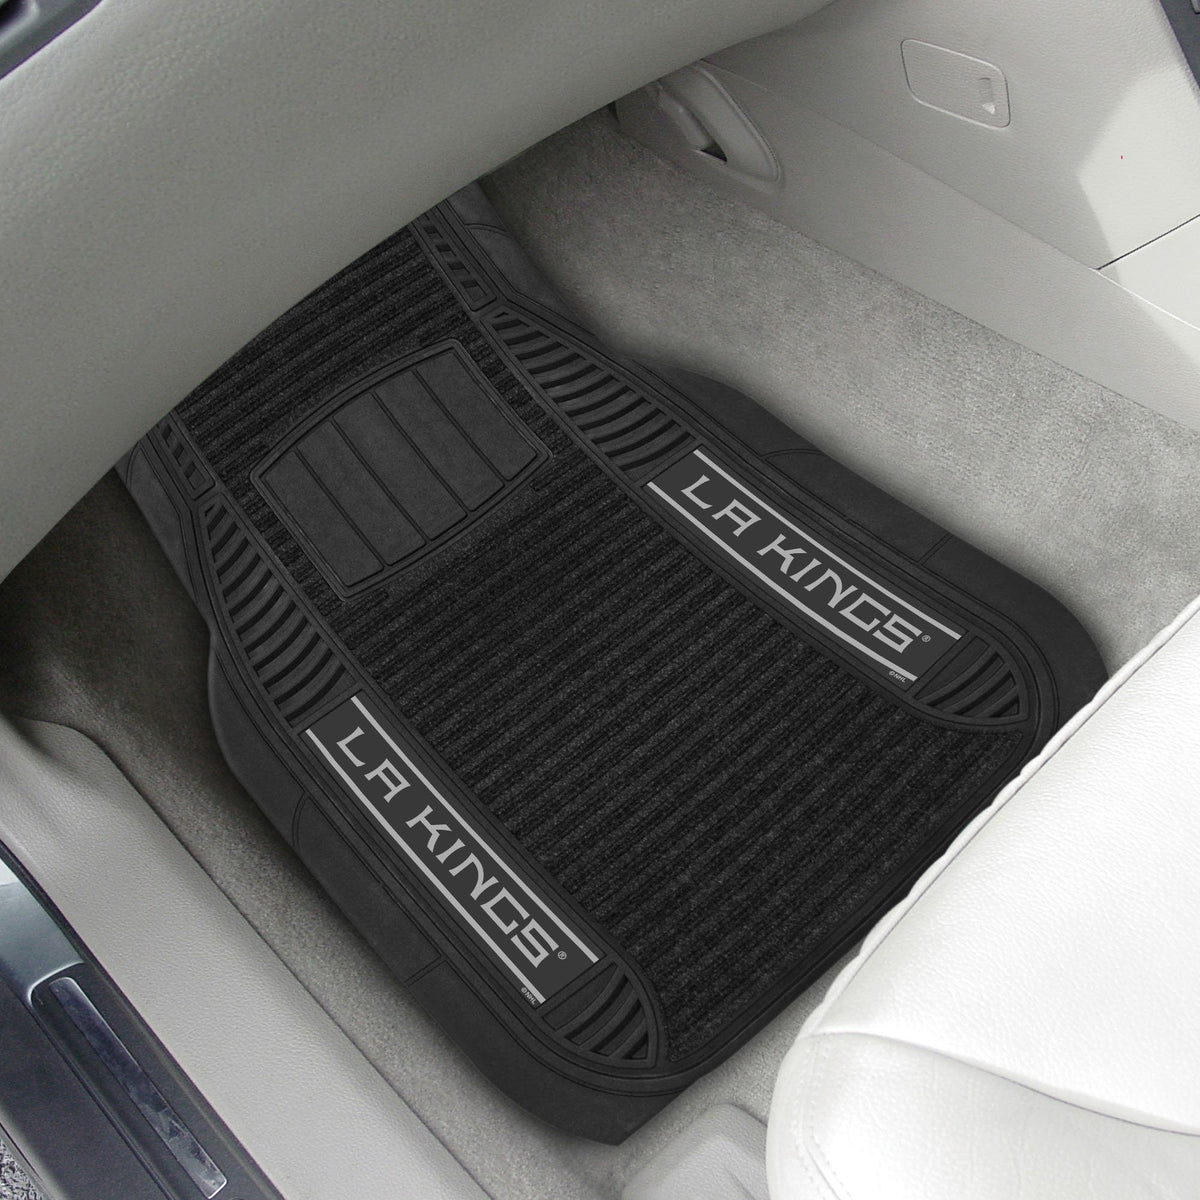 NHL - Deluxe Car Mat, 2-Piece Set NHL Mats, Front Car Mats, 2-pc Deluxe Car Mat Set, NHL, Auto Fan Mats Los Angeles Kings